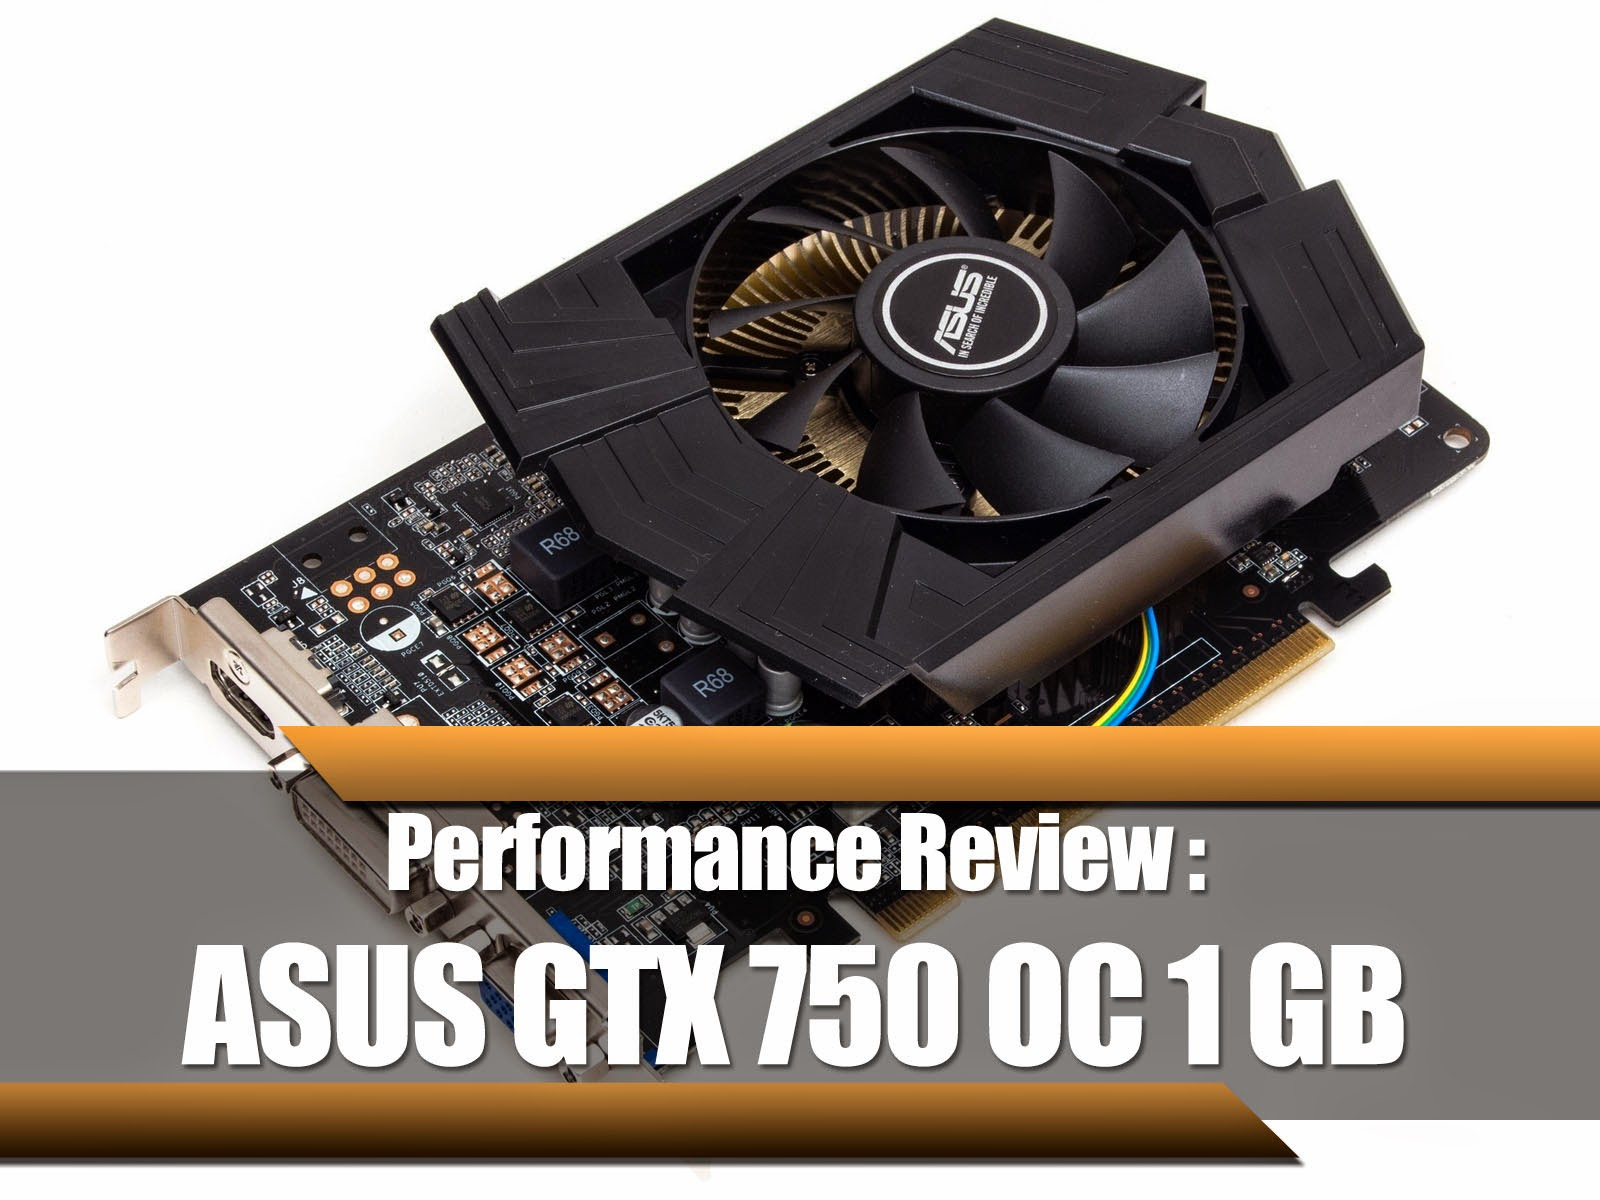 ASUS GTX 750 Performance Review 1